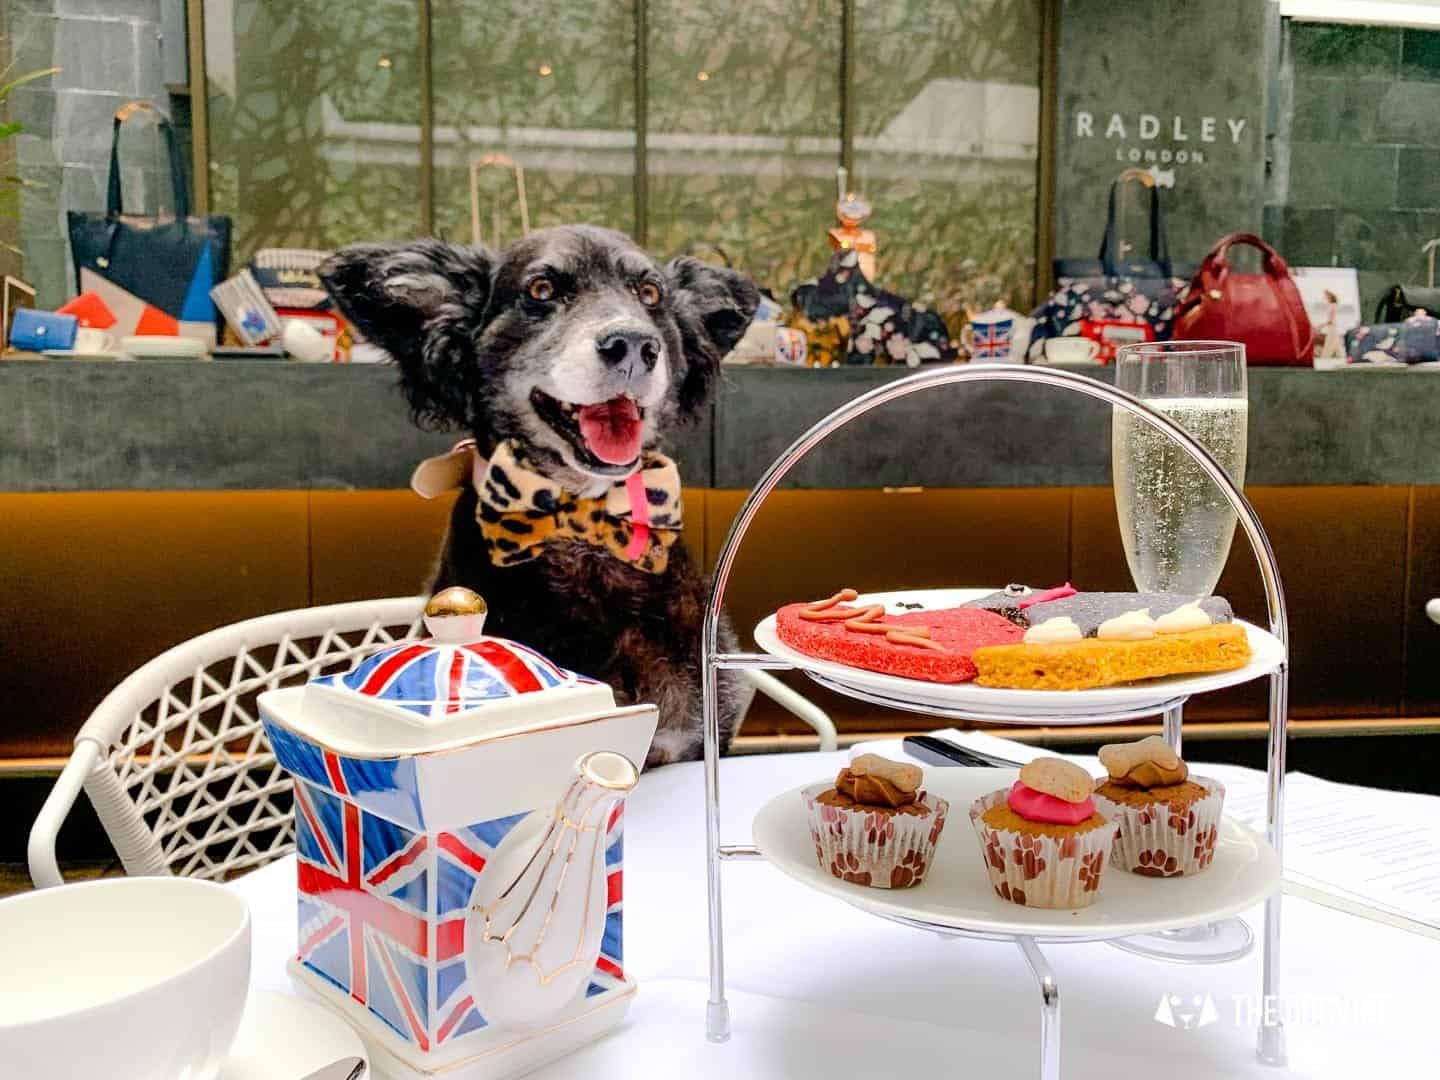 The Radley x South Place Hotel Dog-friendly Afternoon Tea